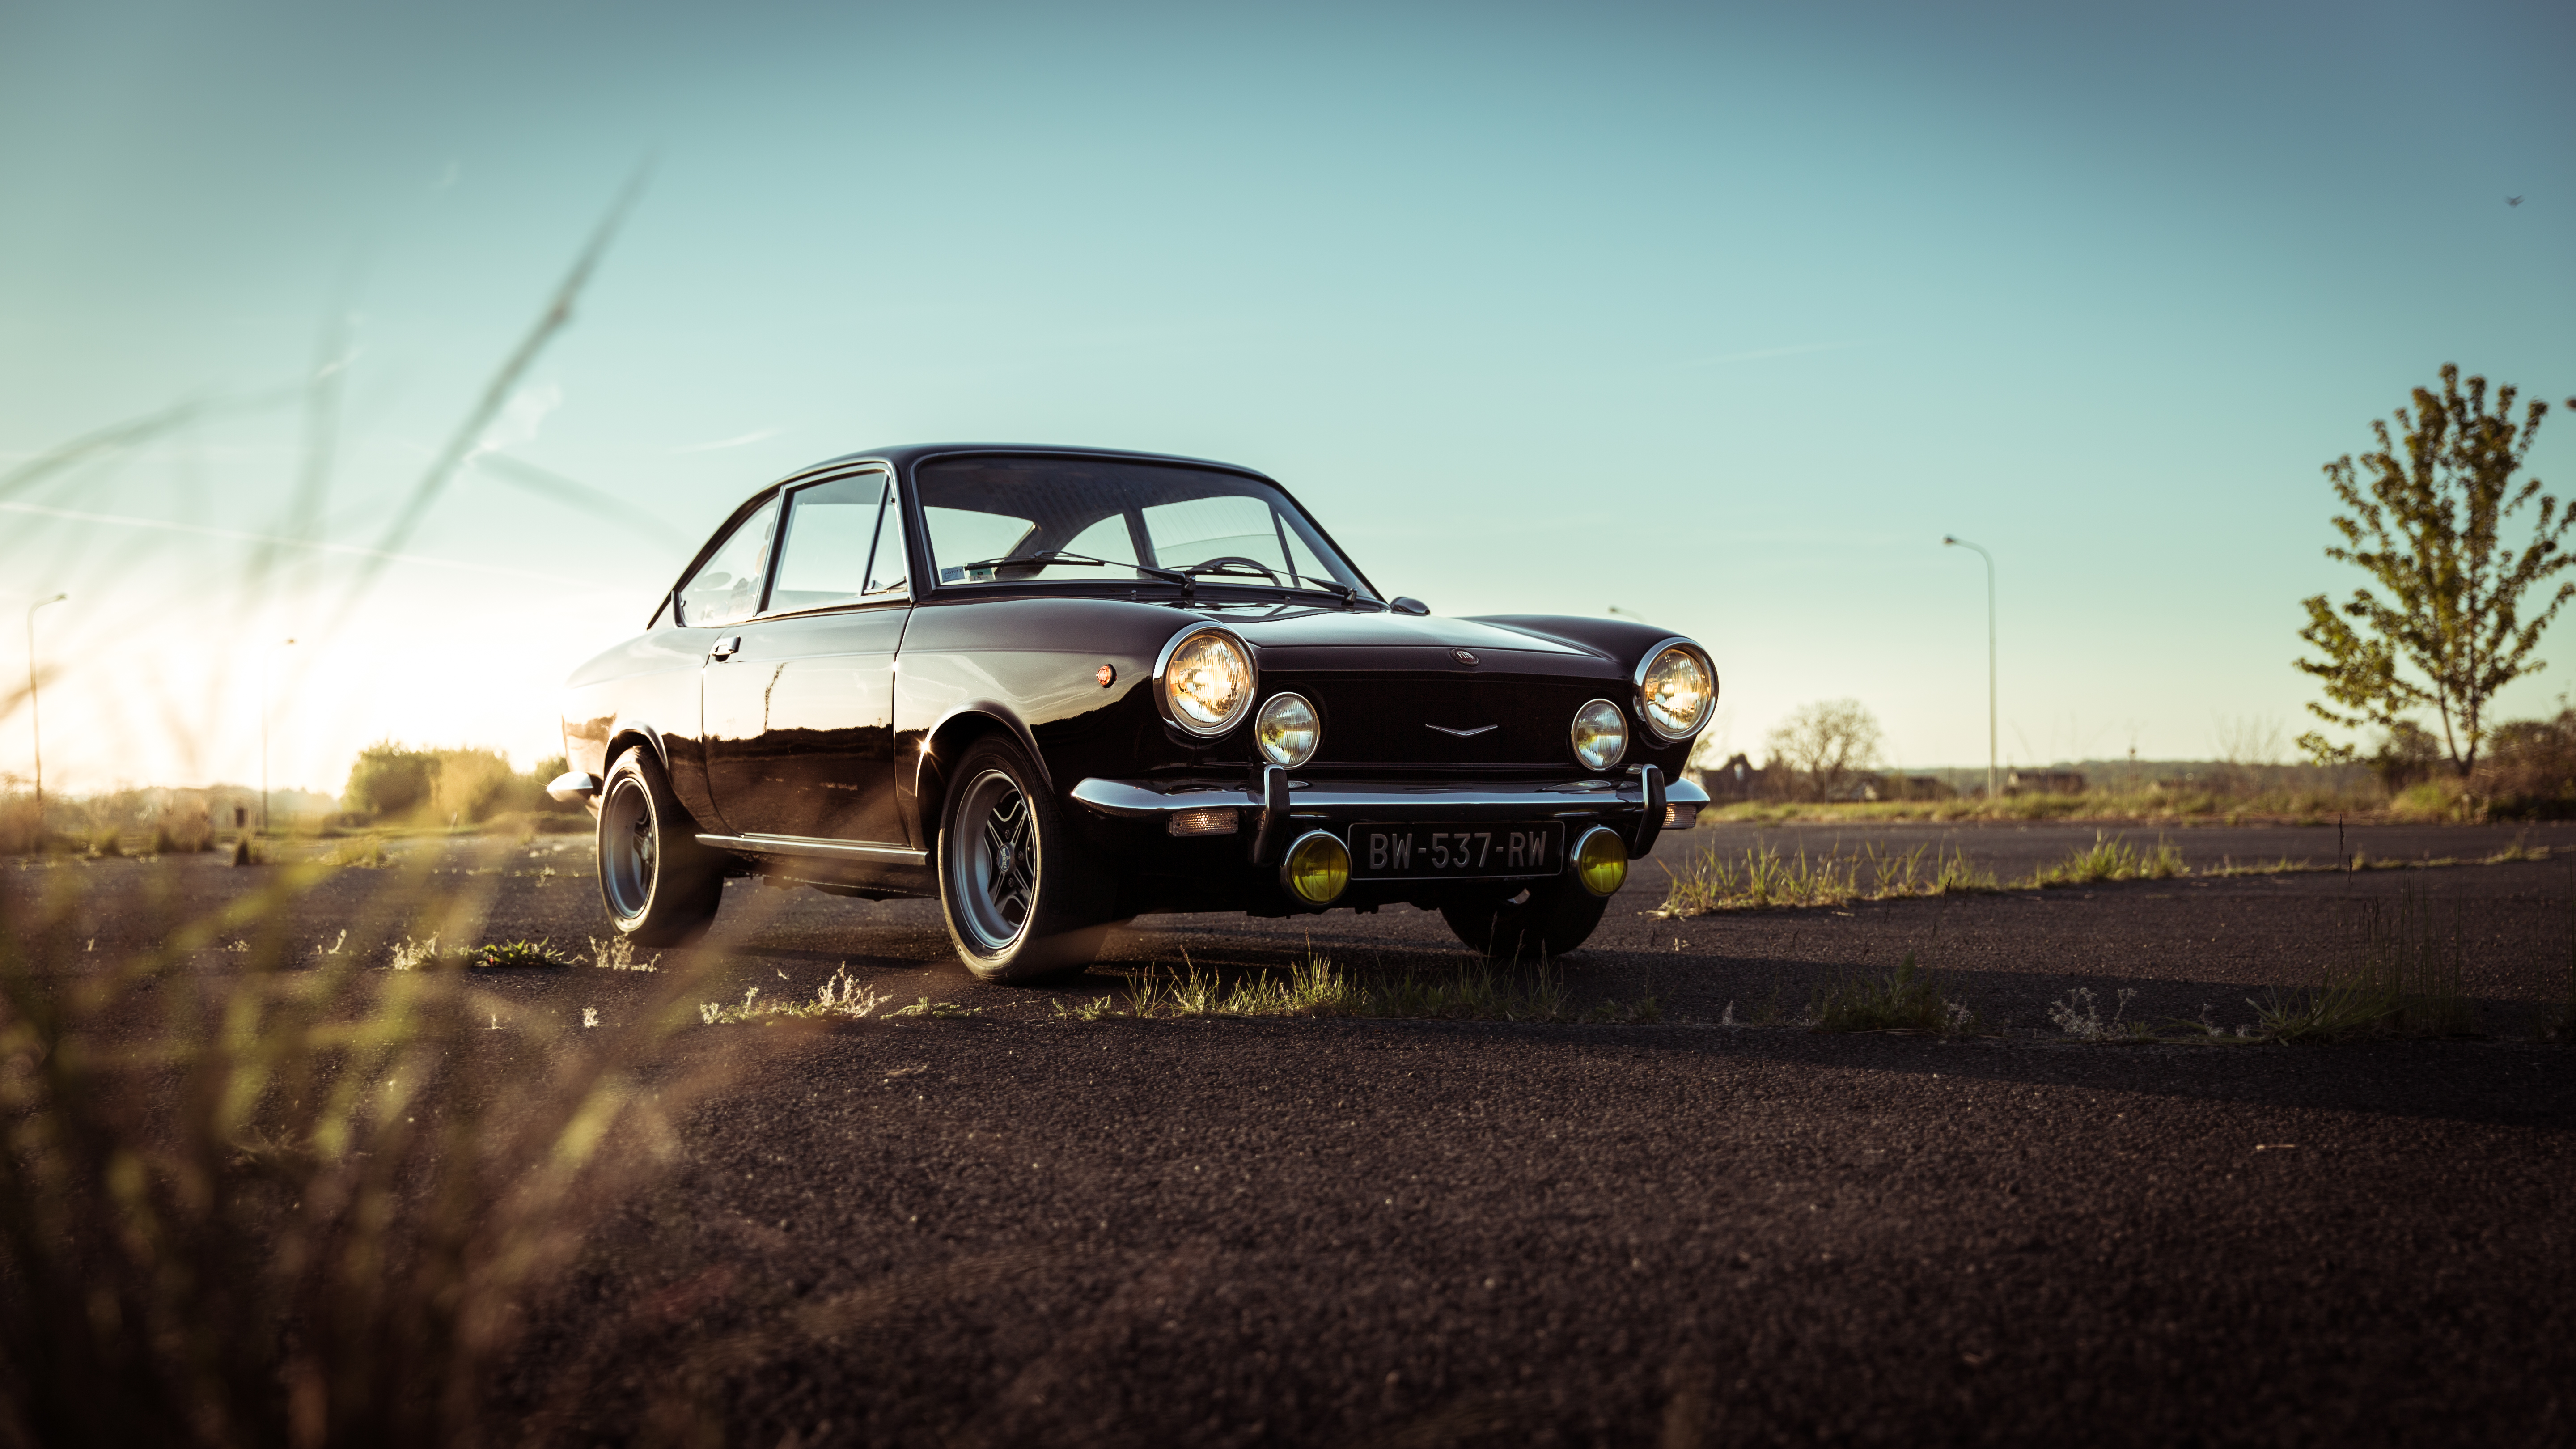 FIAT 850 COUPE SPORT